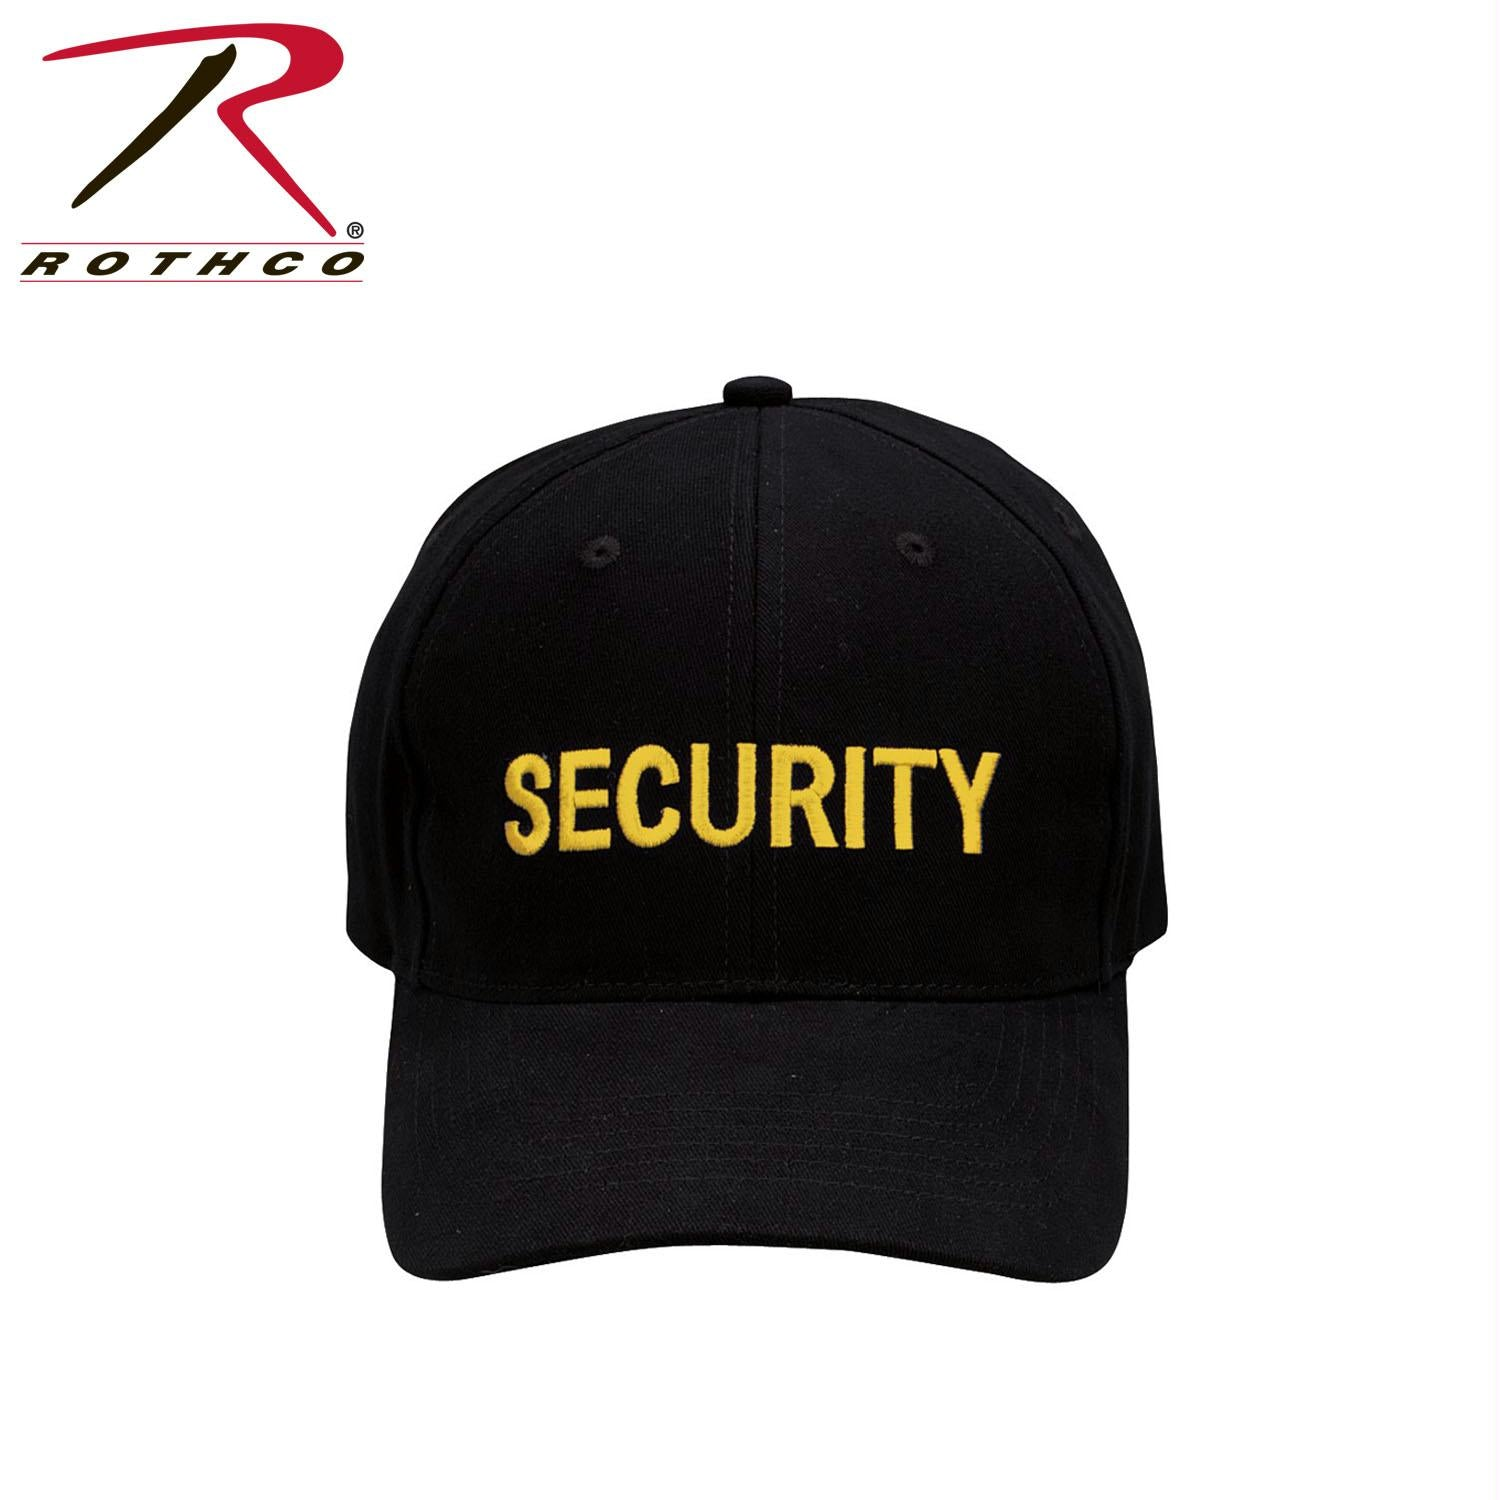 Rothco Security Supreme Low Profile Insignia Cap - Black / Gold